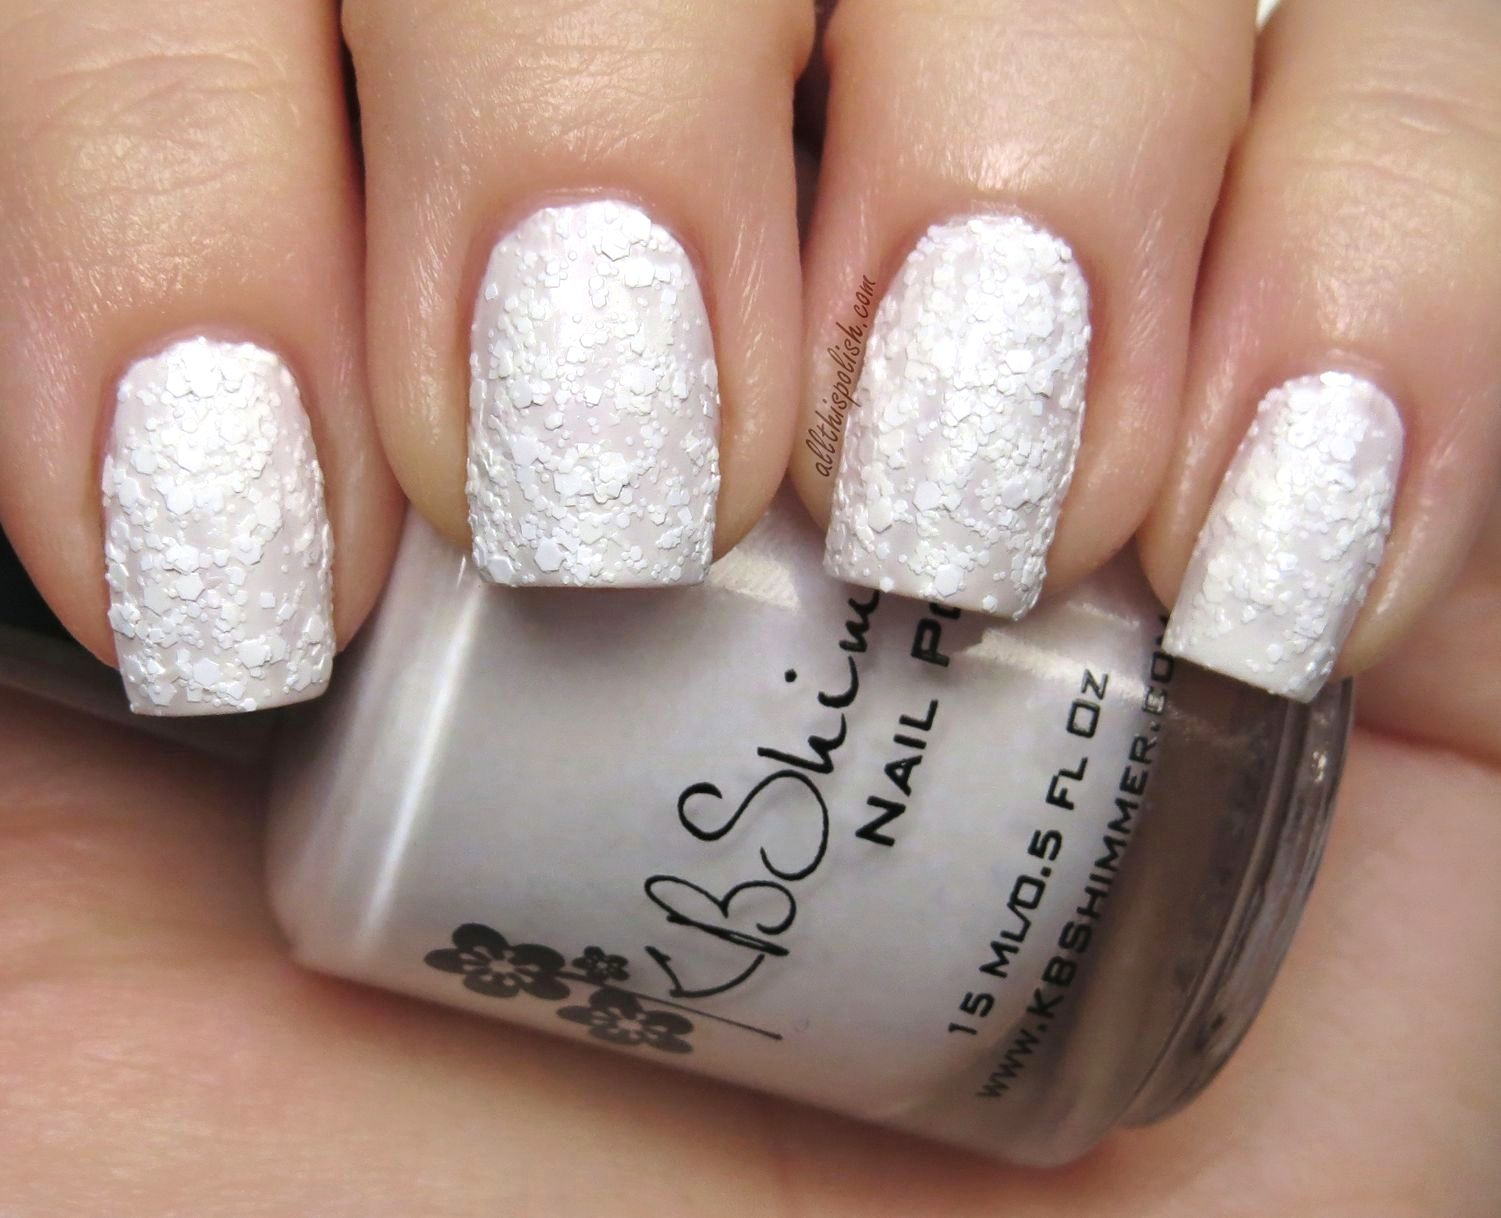 KBShimmer White Here, White Now